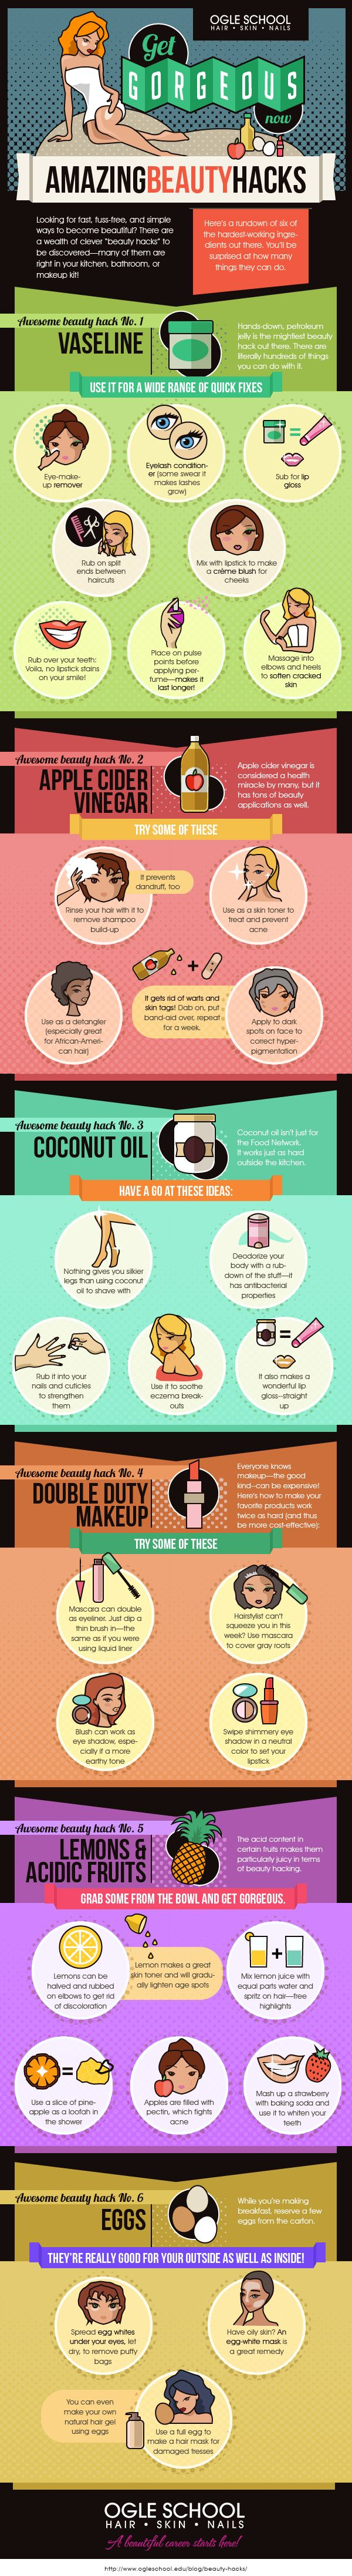 Get Gorgeous Now Amazing Beauty Hacks #infographic